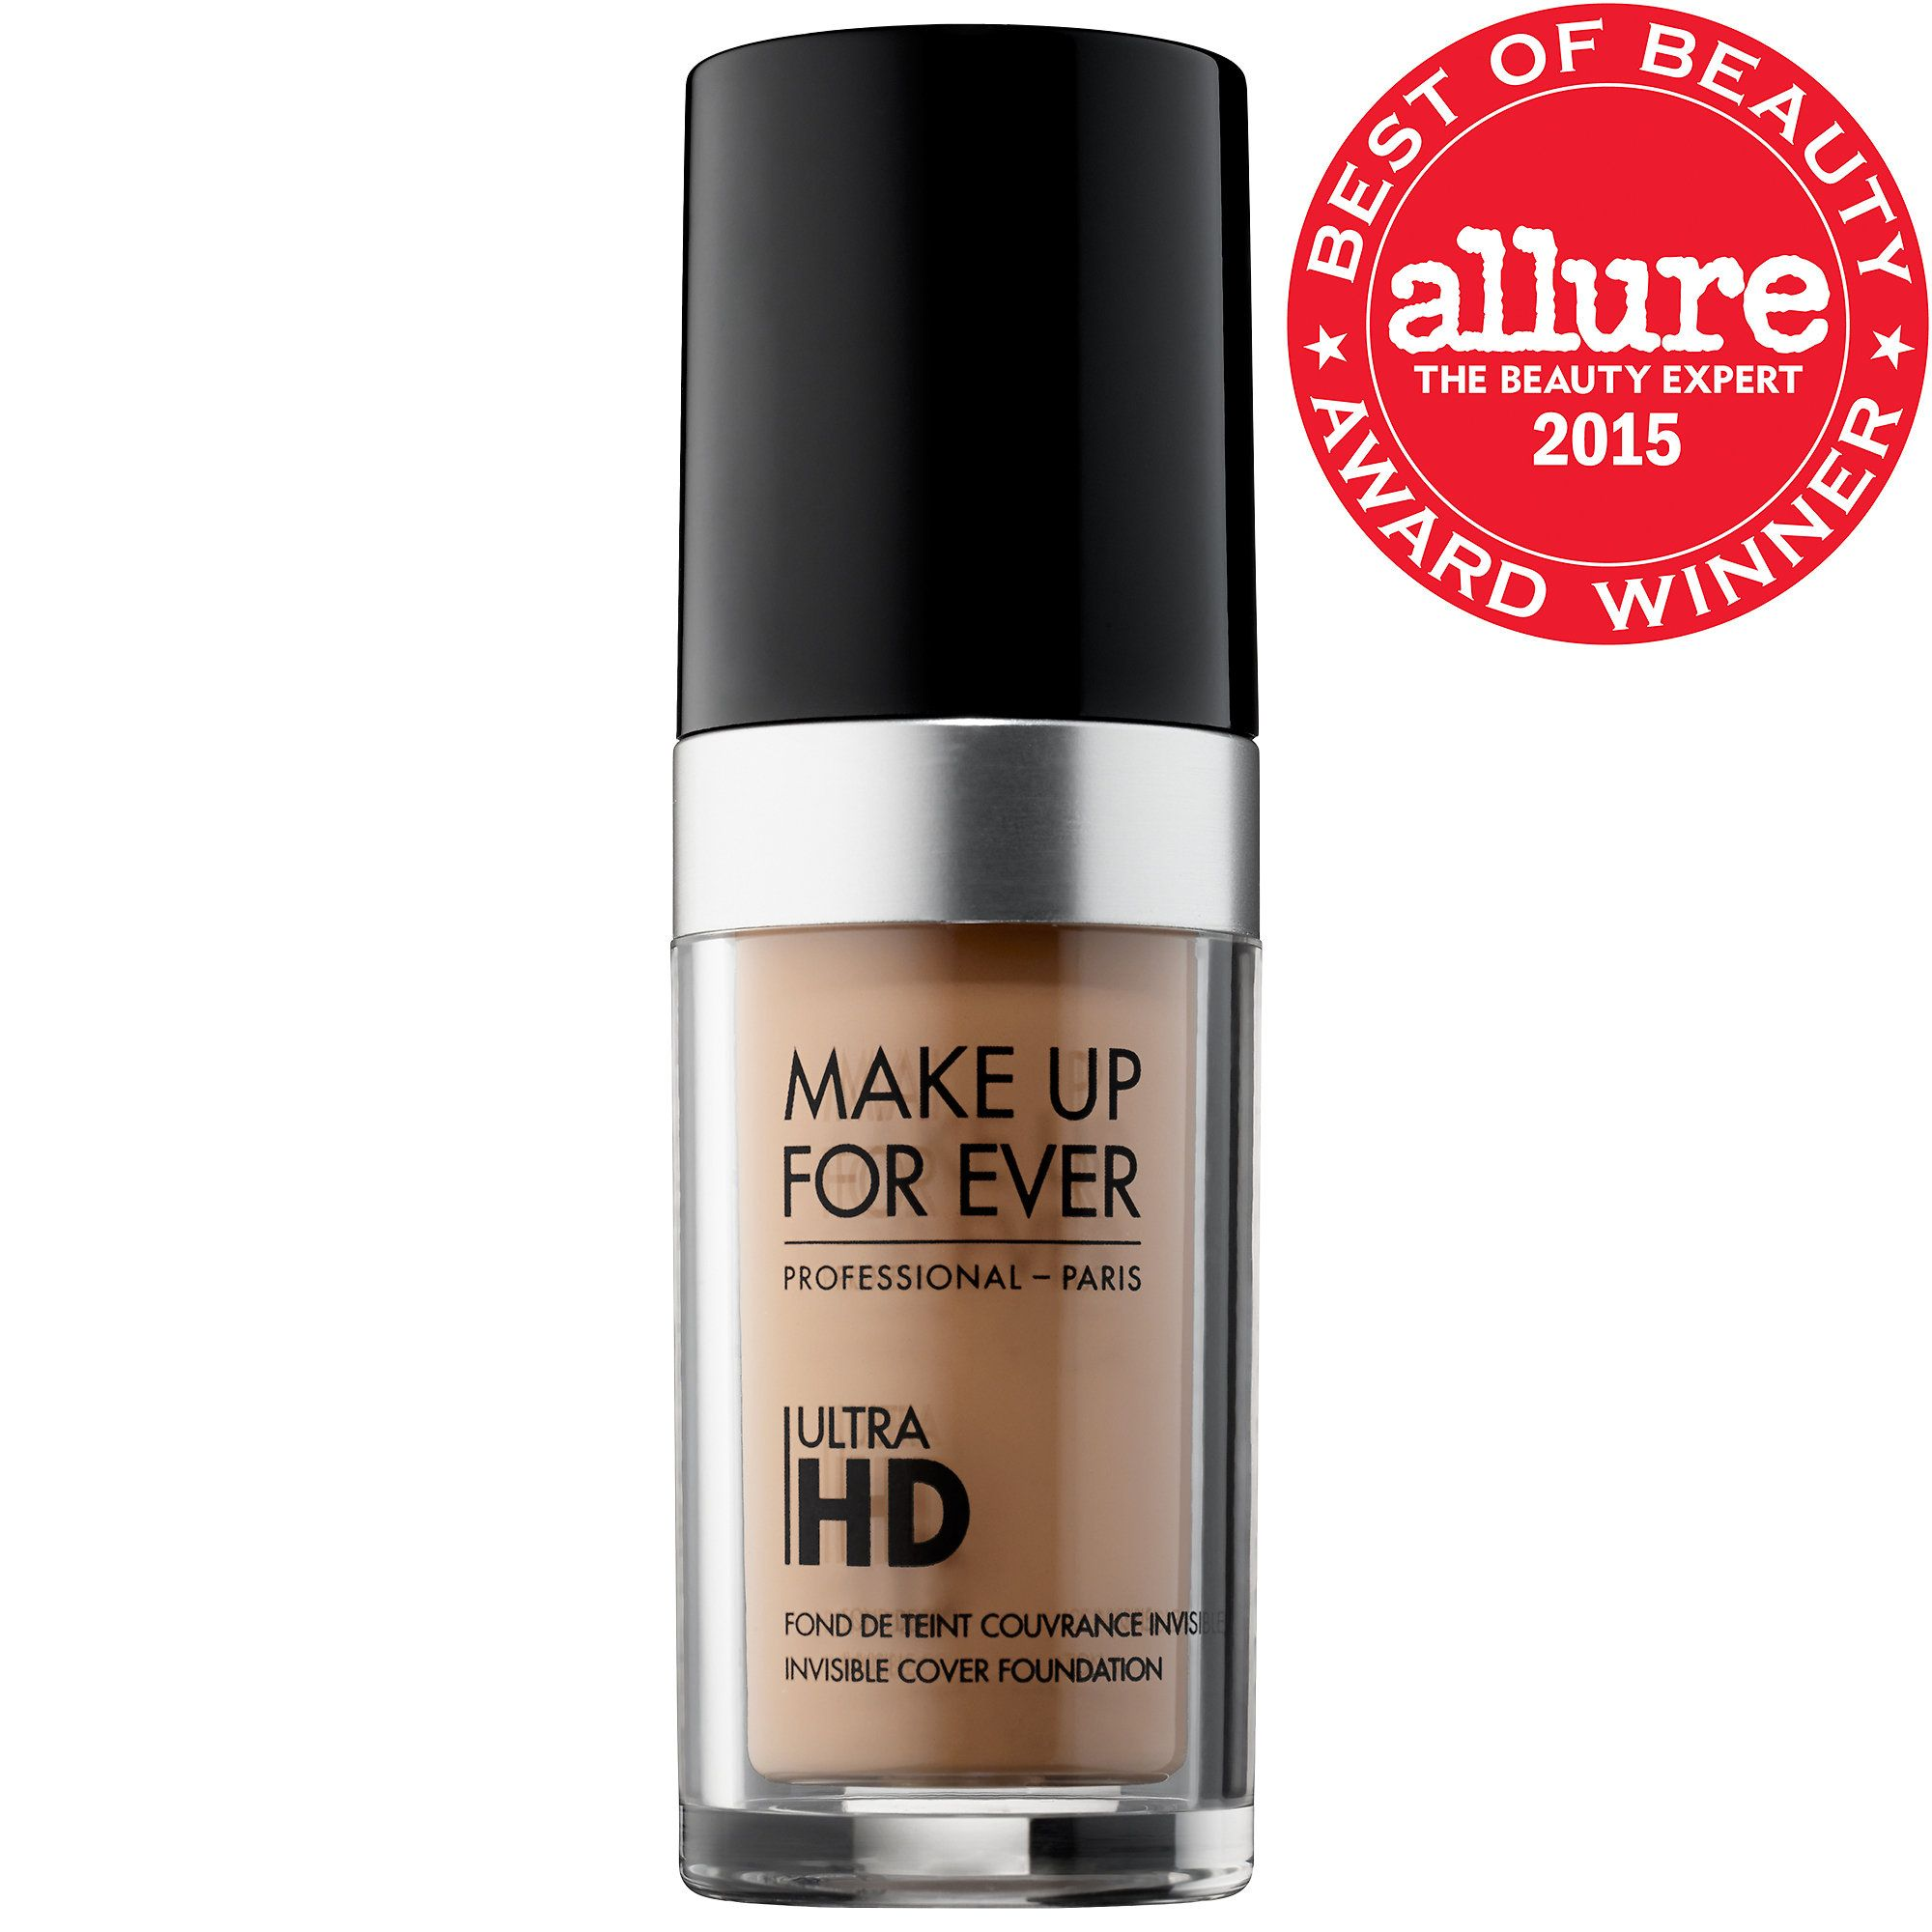 Ultra HD Invisible Cover Foundation Makeup forever hd